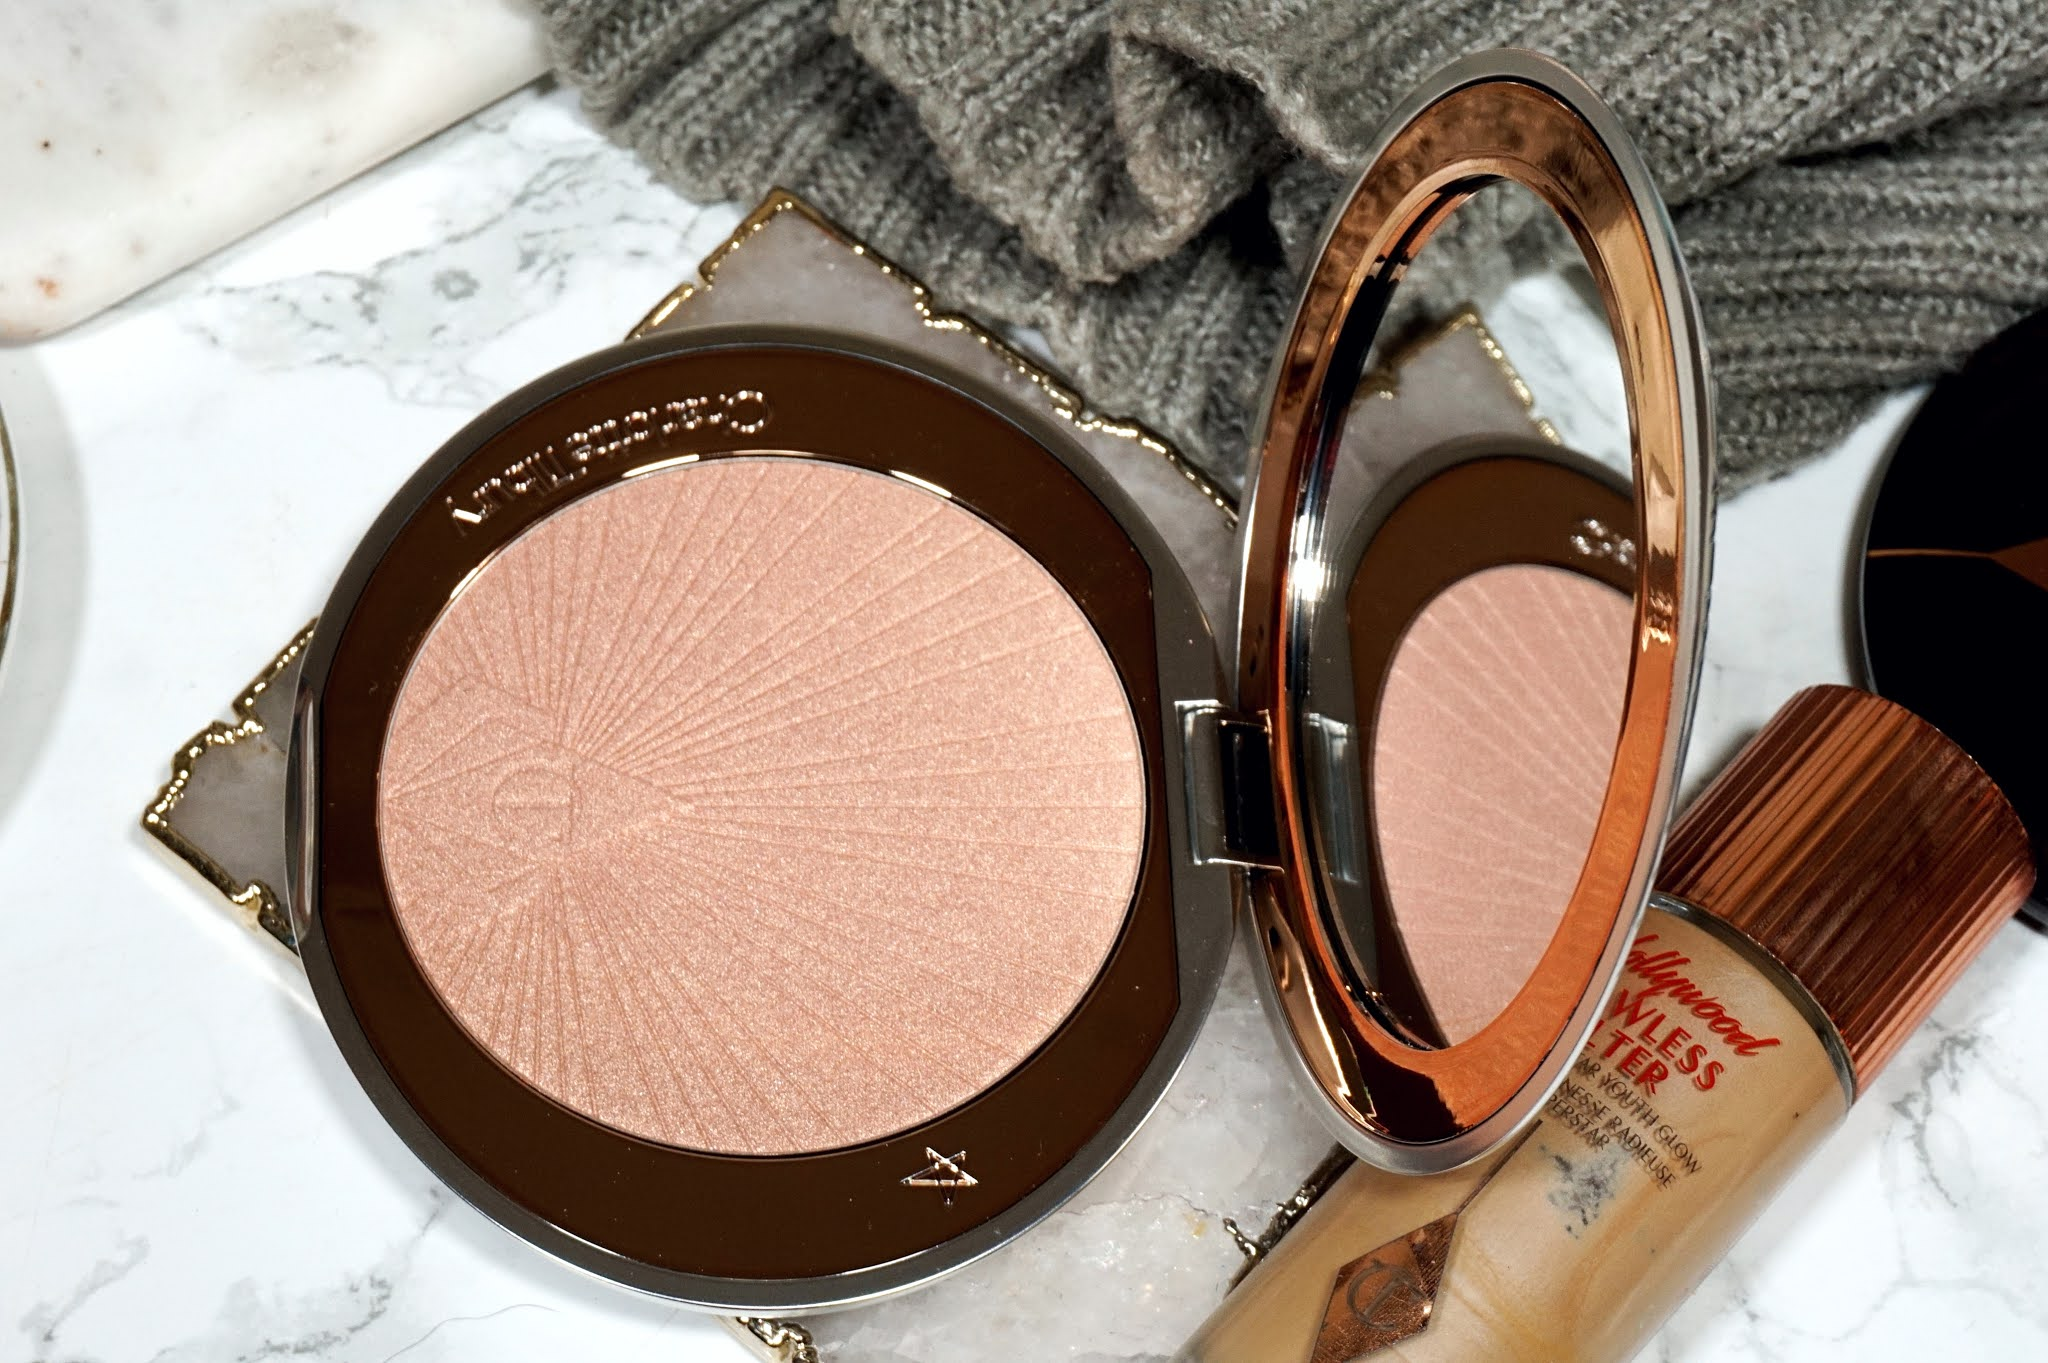 Charlotte Tilbury Superstar Glow Highlighter Review and Swatches